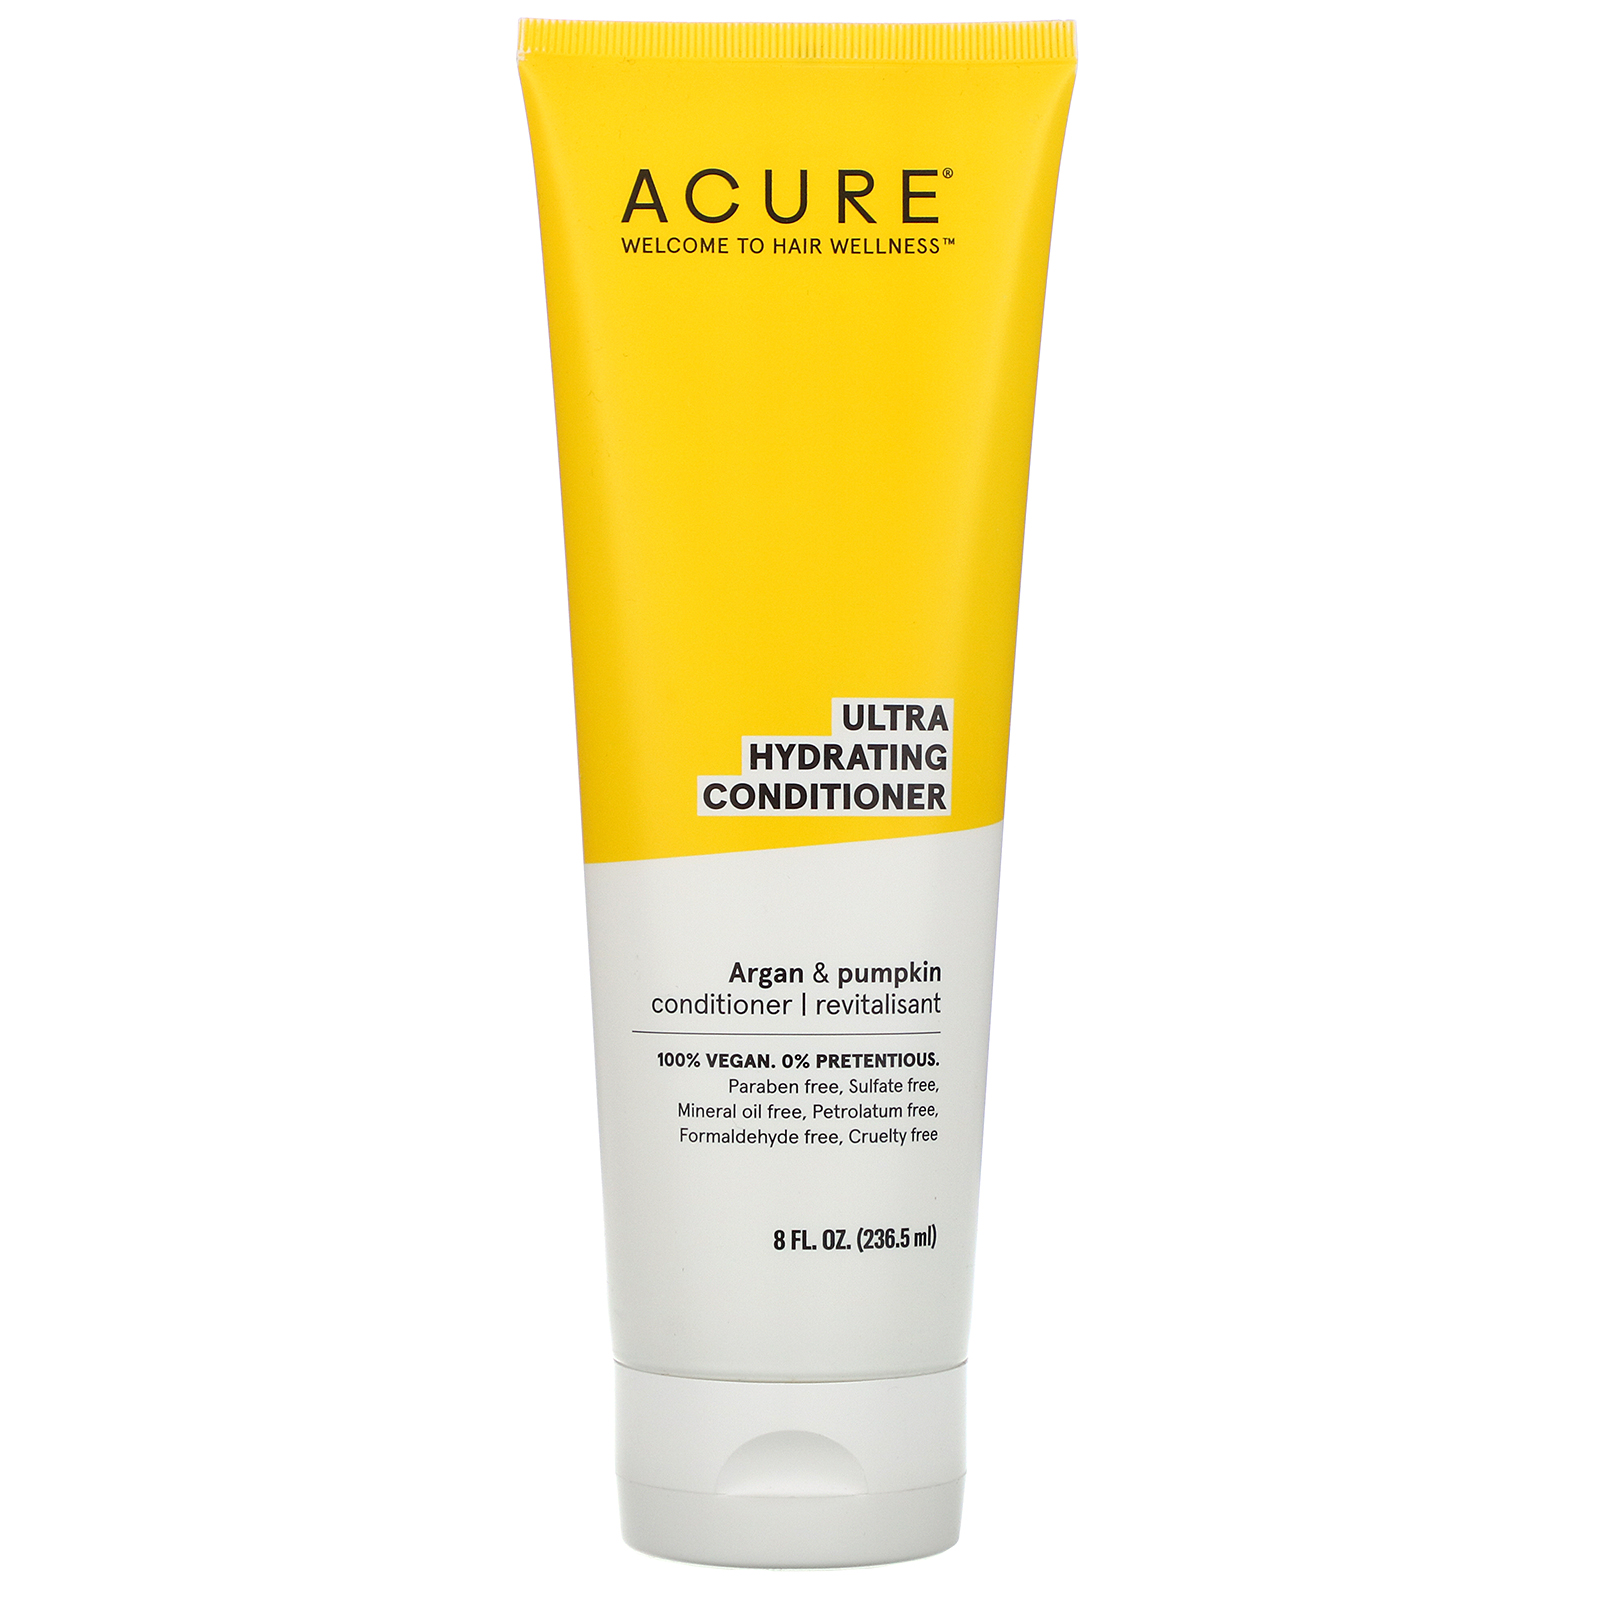 Acure, Ultra Hydrating Conditioner, Argan Oil & Pumpkin, 8